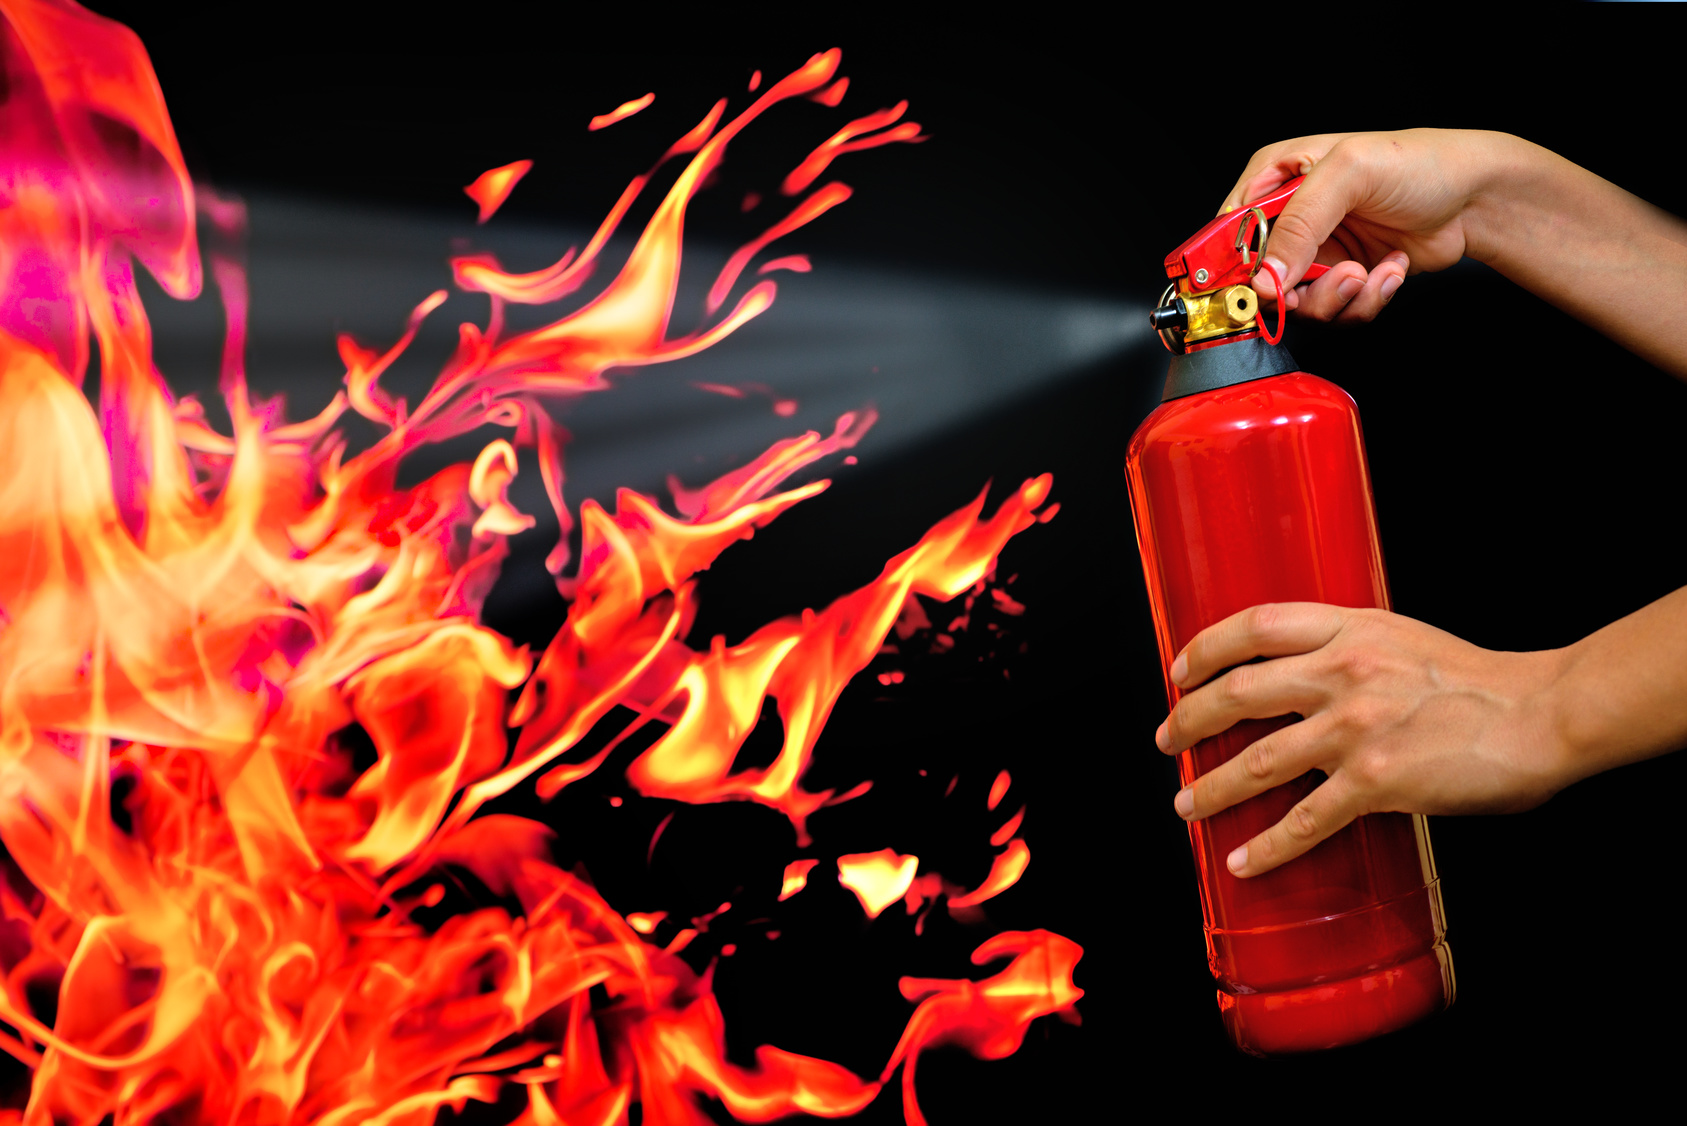 How to Deal with Water Damage from Extinguishing a Fire